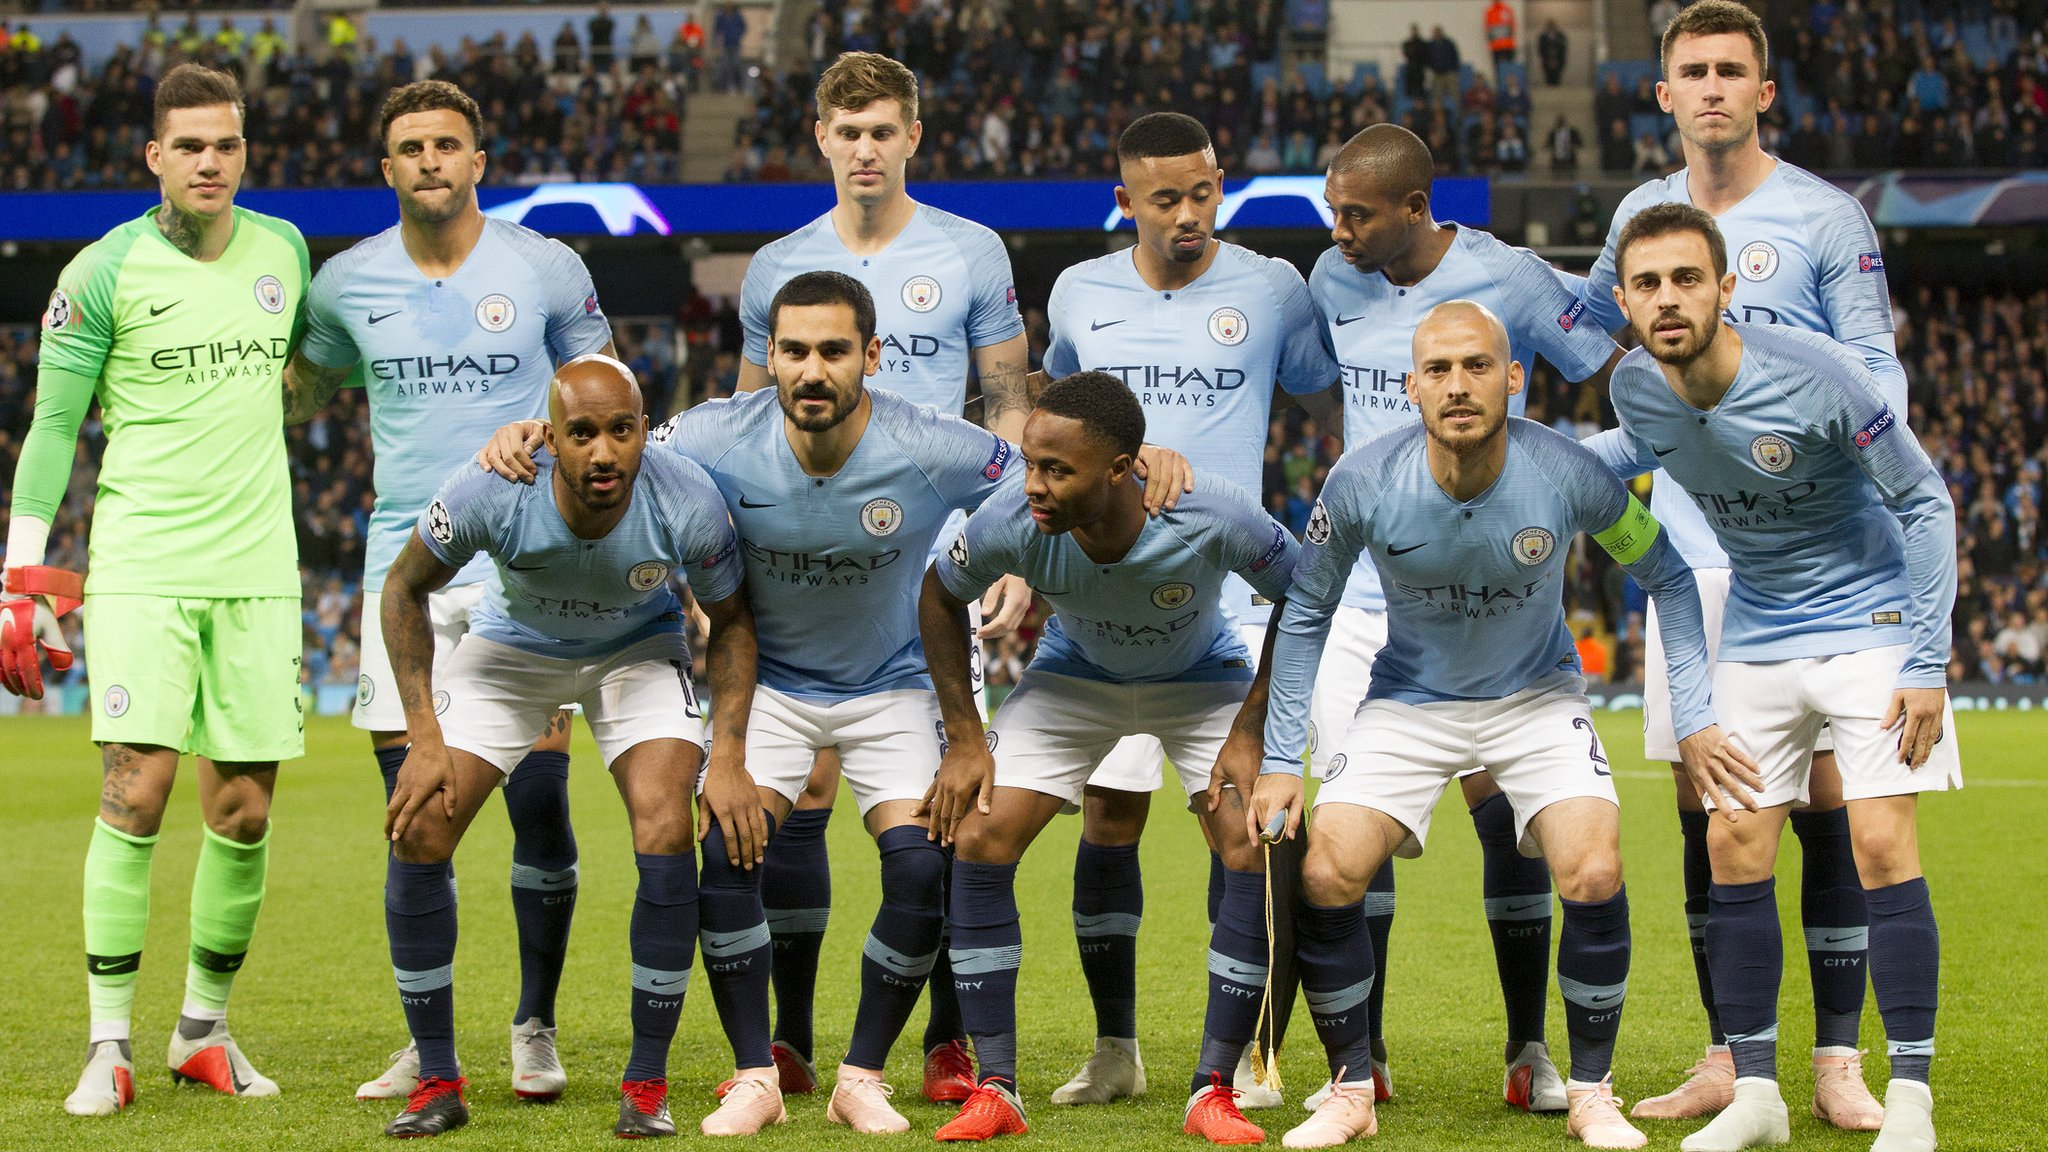 Man City 1-2 Lyon: City reduced to a barely recognisable rabble